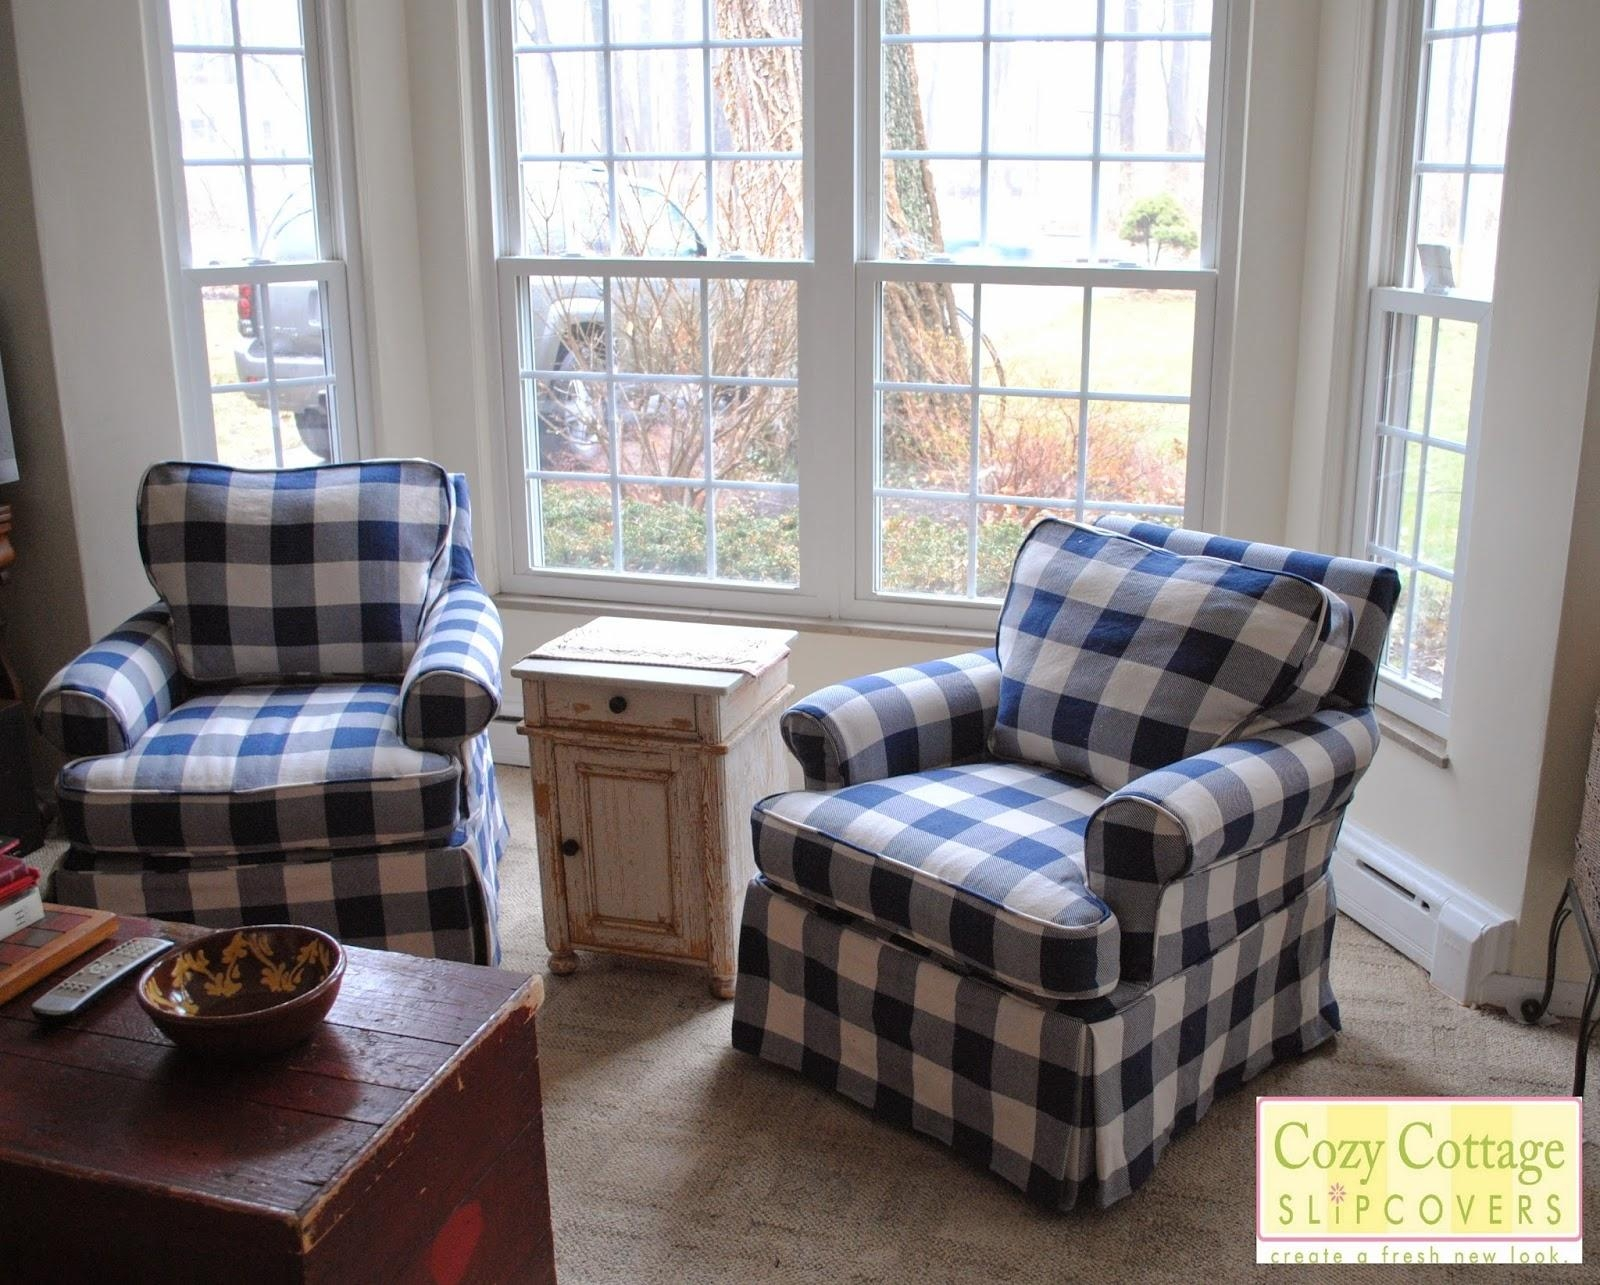 Cozy Cottage Slipcovers: Blue And White Buffalo Check Slipcovers Regarding Buffalo Check Sofas (View 8 of 20)